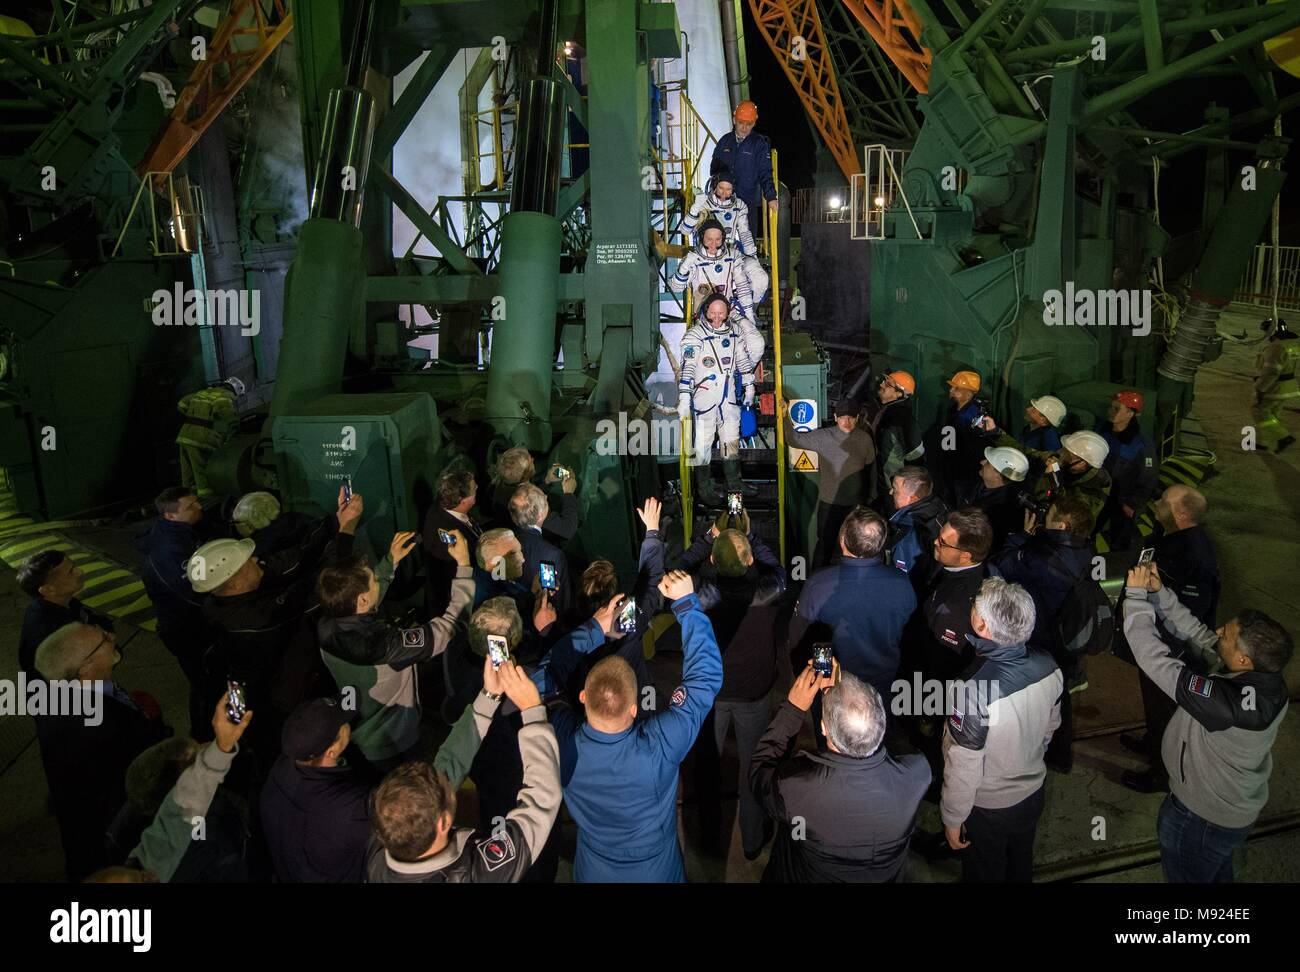 Baikonur Cosmodrome, Kazakhstan. 21st Mar, 2018.  International Space Station Expedition 55 crew boards the Russian Soyuz MS-08 rocket for lifts off from the Baikonur Cosmodrome March 21, 2018 in Baikonur, Kazakhstan. Russian cosmonaut Oleg Artemyev, bottom, of Roscosmos and American astronauts Ricky Arnold, center, and Drew Feustel, top, of NASA will spend the next five months living and working aboard the International Space Station. Credit: Planetpix/Alamy Live News - Stock Image